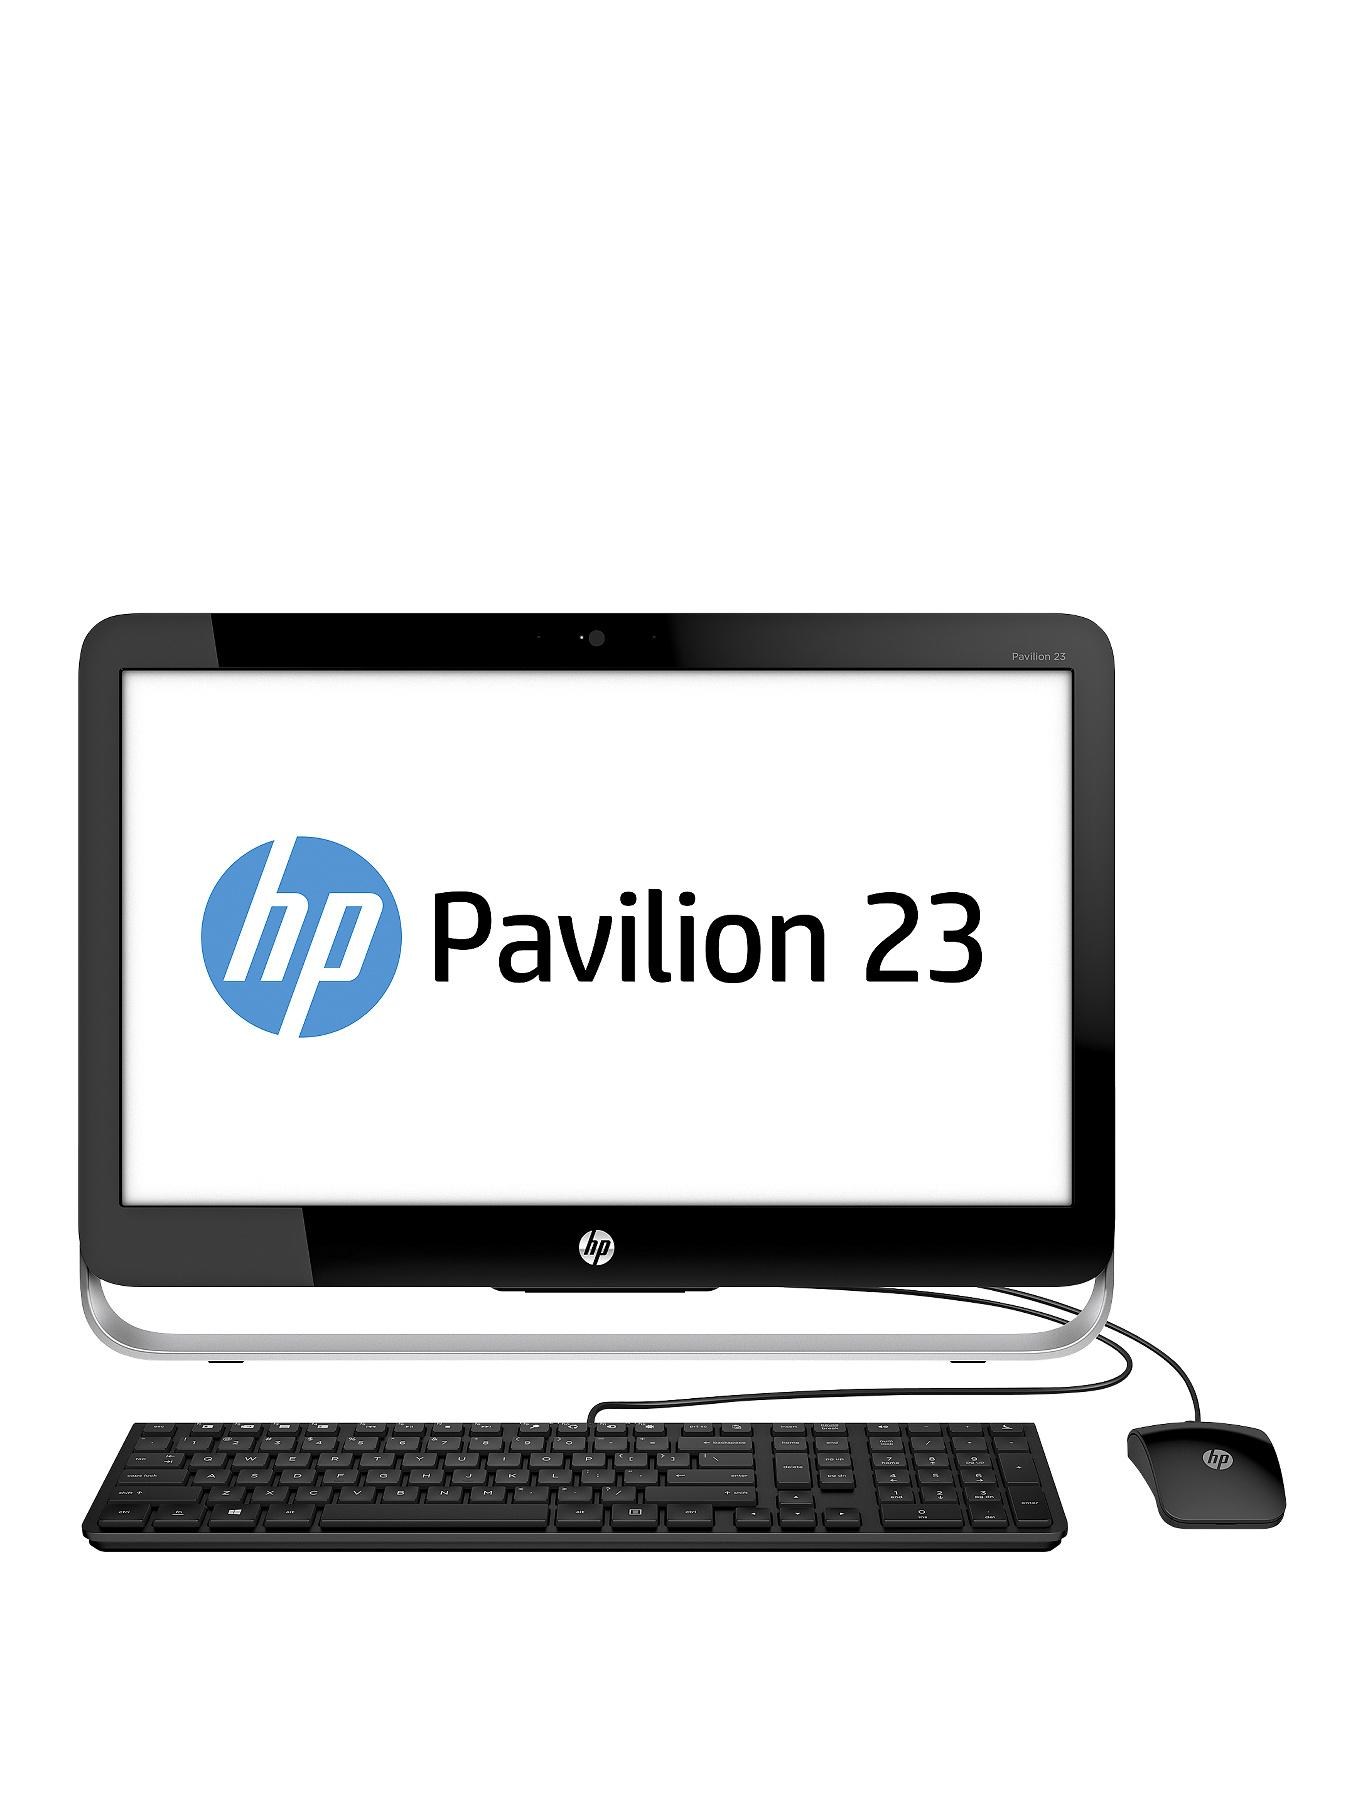 HP Pavilion 23-g350na Intel Core i5 Processor, 8Gb RAM, 1Tb Hard Drive, Wi-Fi, 23 inch All In One Desktop with Optional Microsoft Office 365 Personal - Black